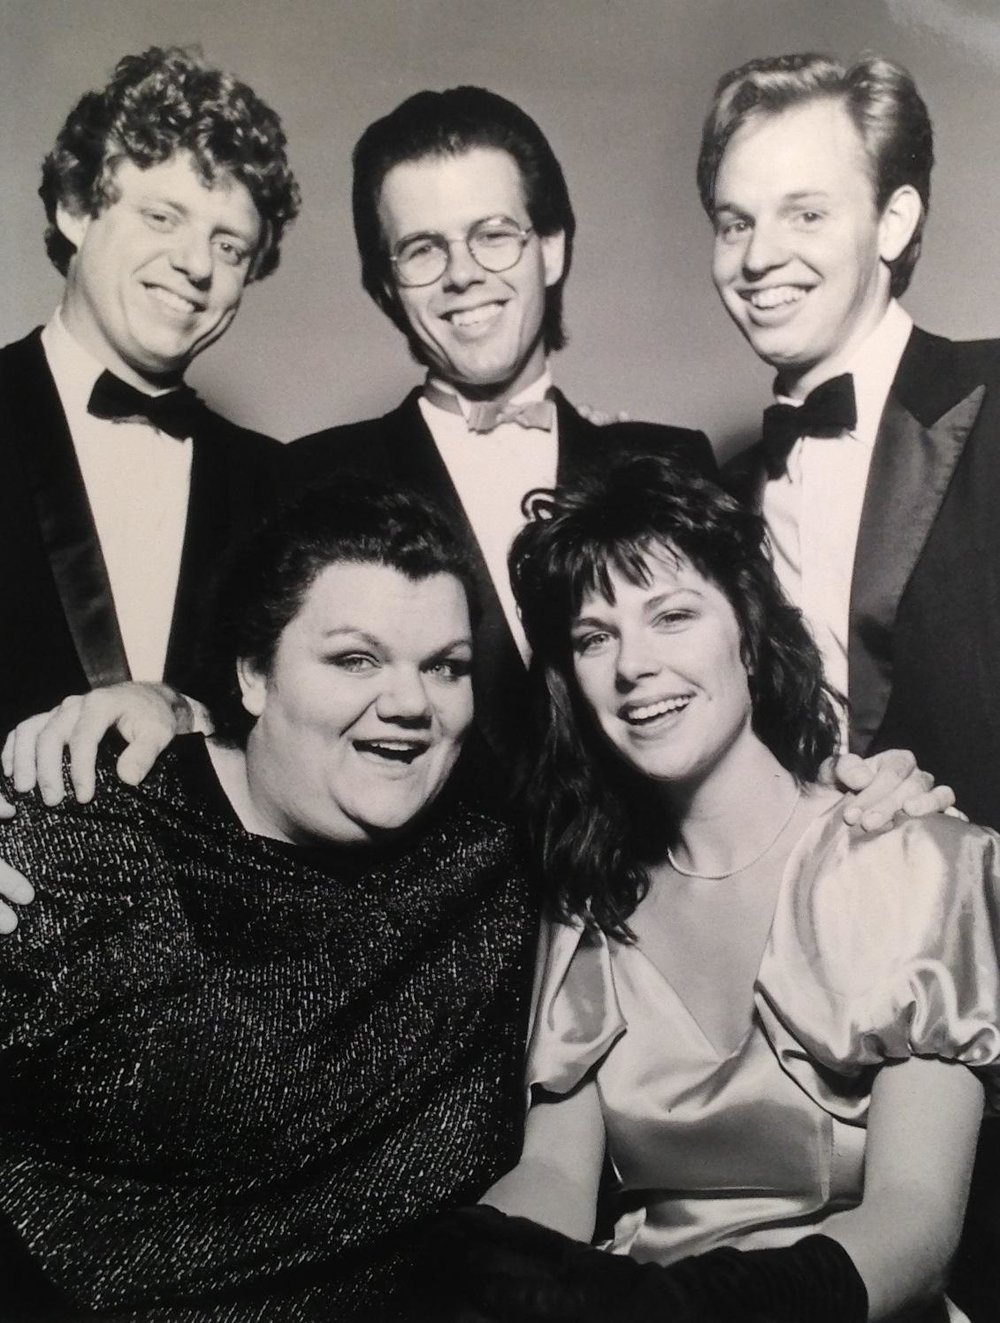 Greg Triggs and his fellow cast members in the early days of his career.